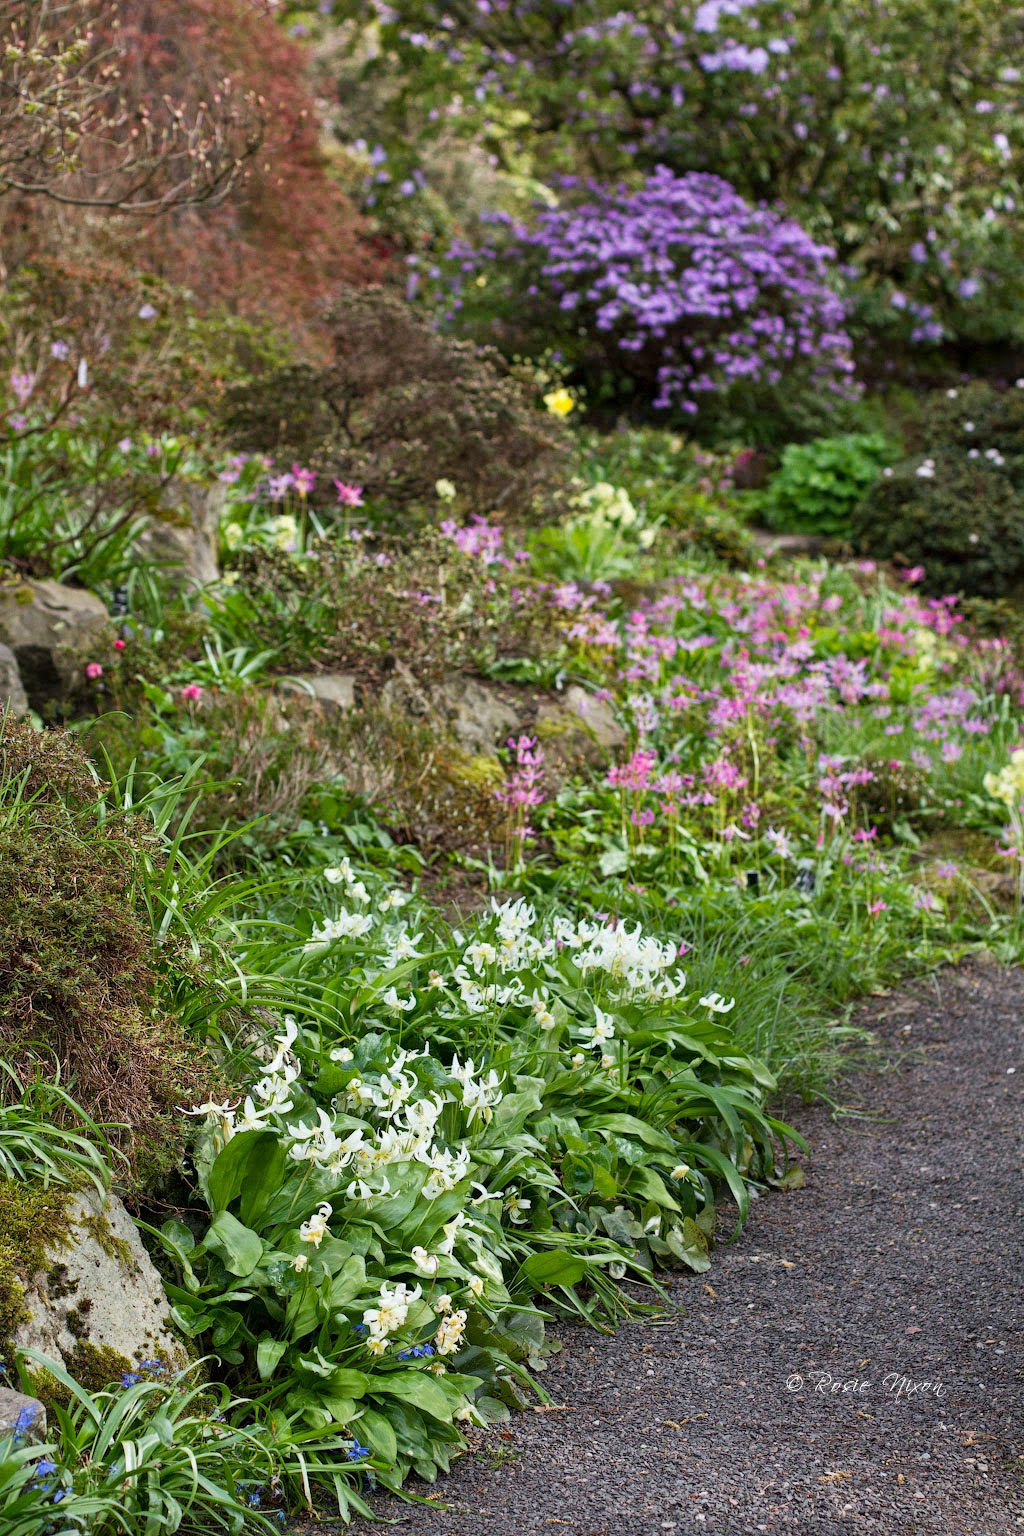 Either Erythronium 'White beauty'  or E. Californicum alongside the pink Erythronium revolutum